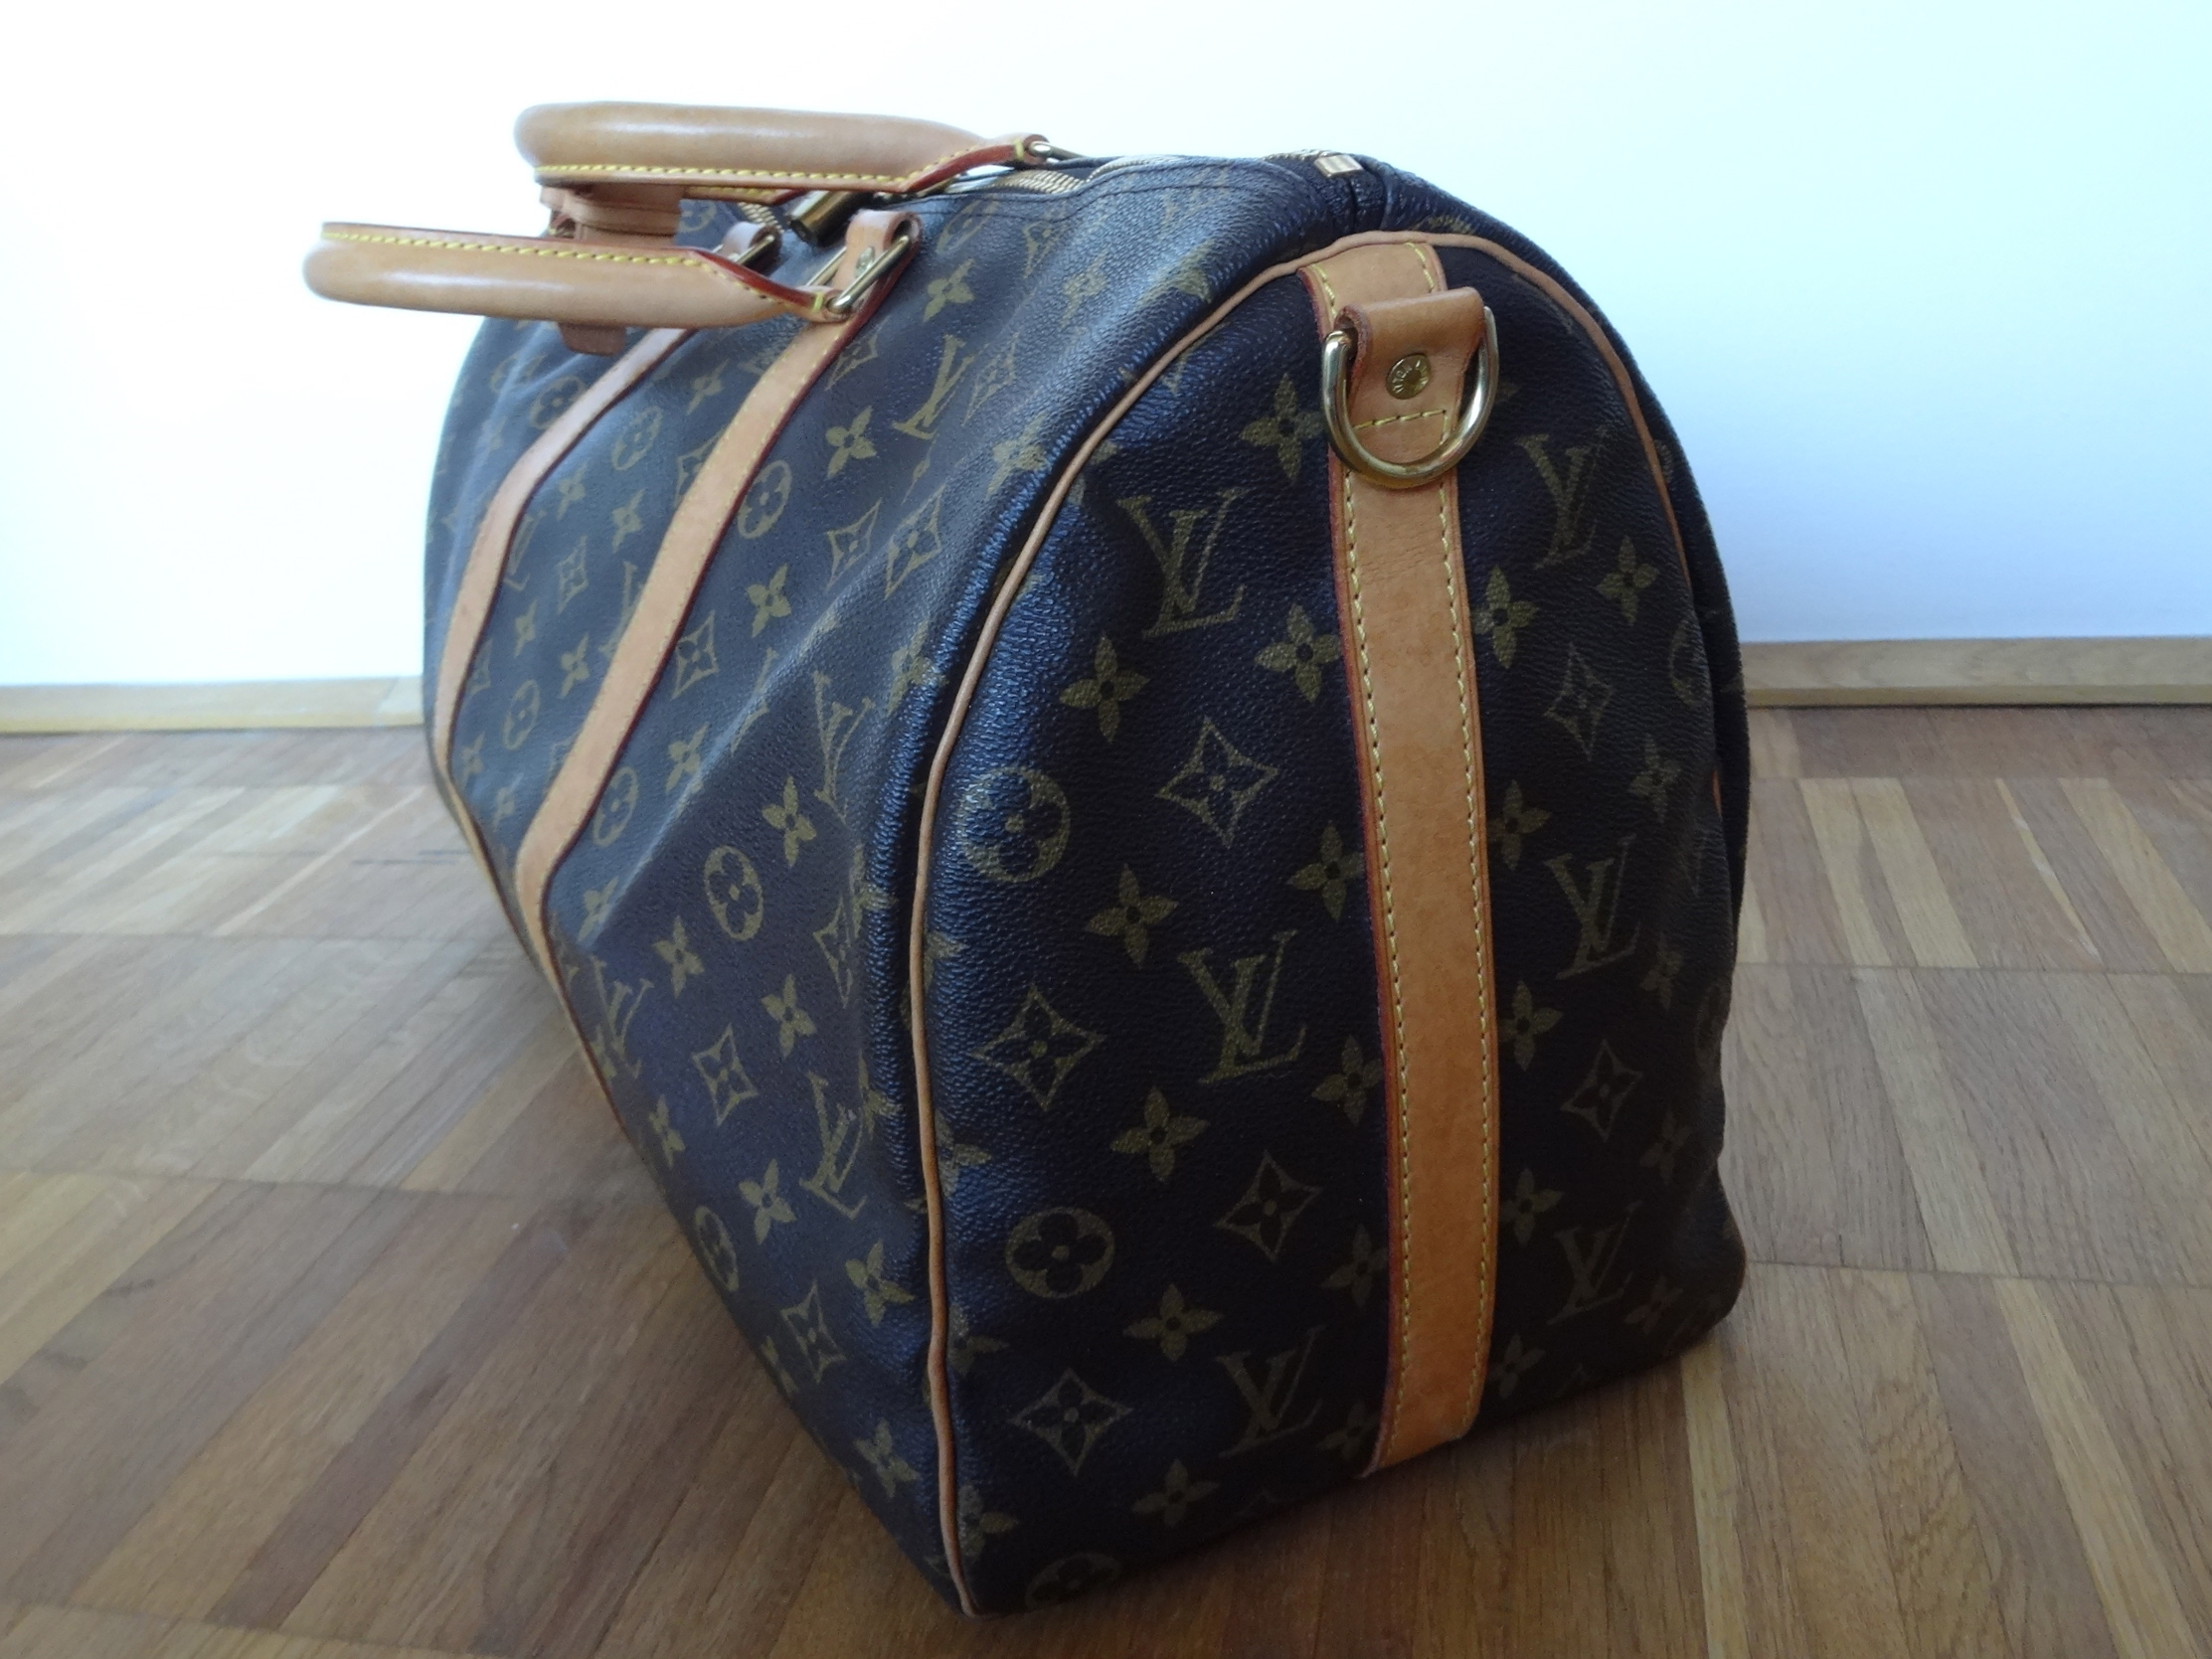 Louis Vuitton Keepall 45 side view